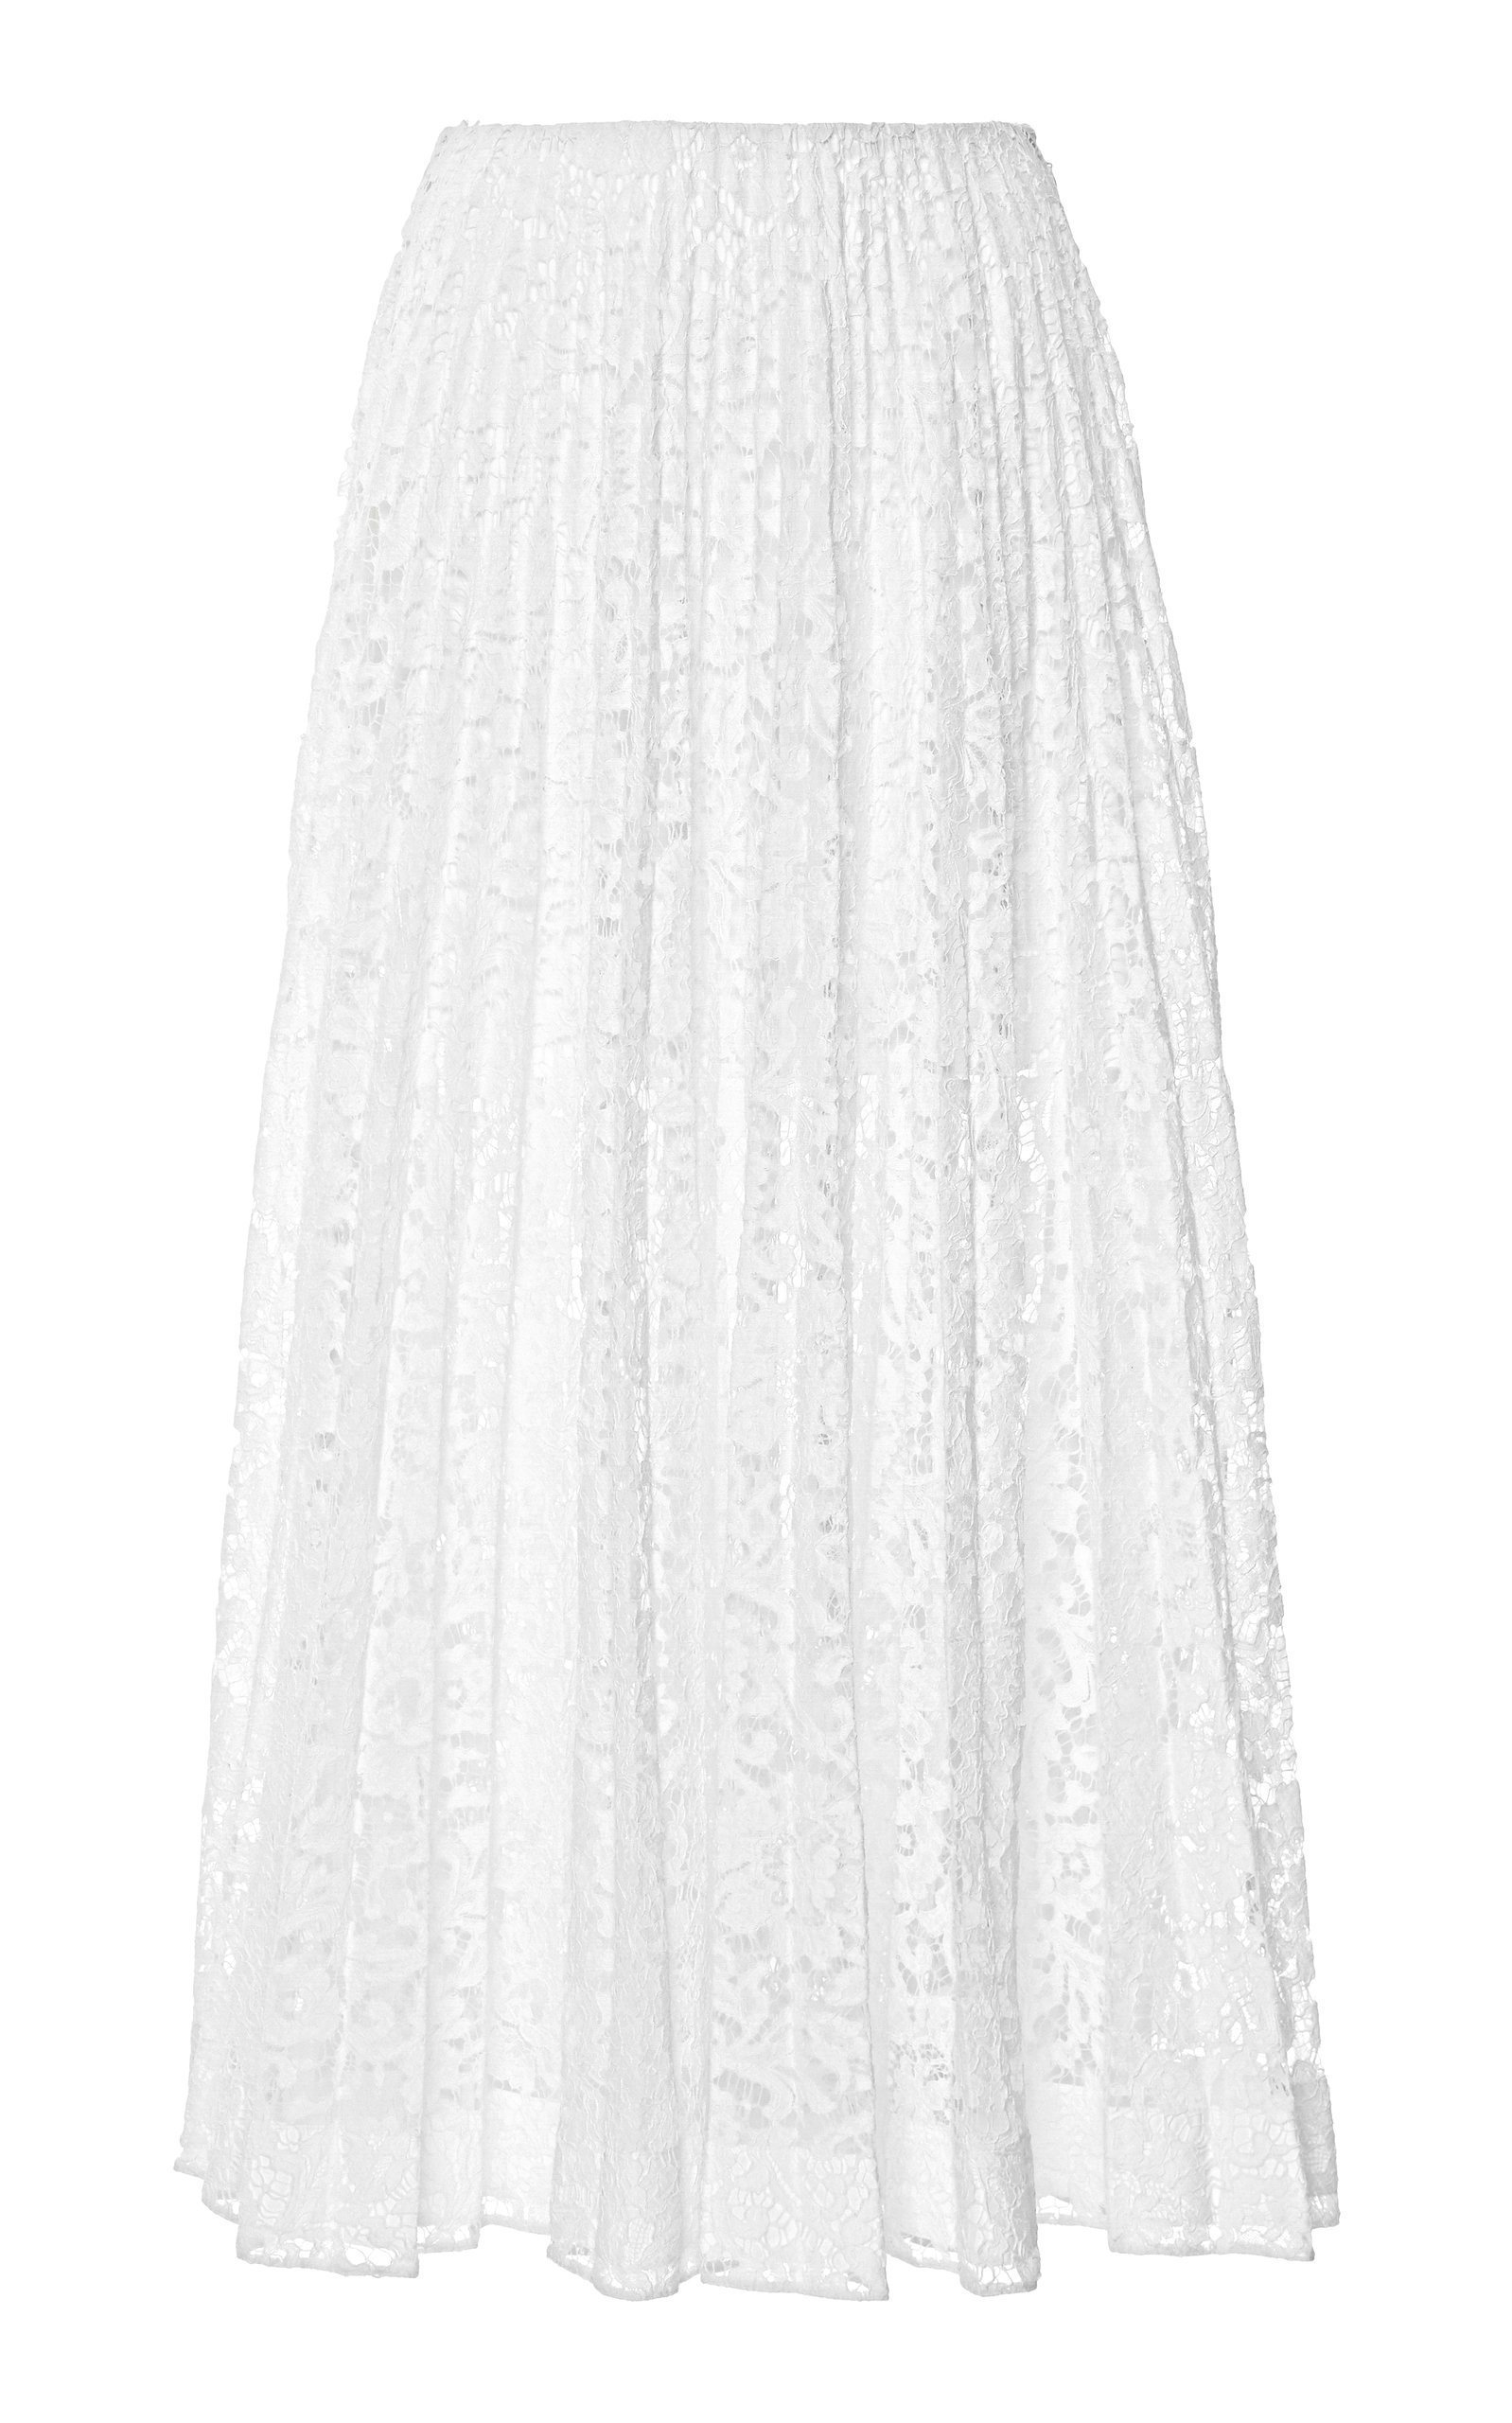 Valentino Sheer Pleated Lace Maxi Skirt Size: 50